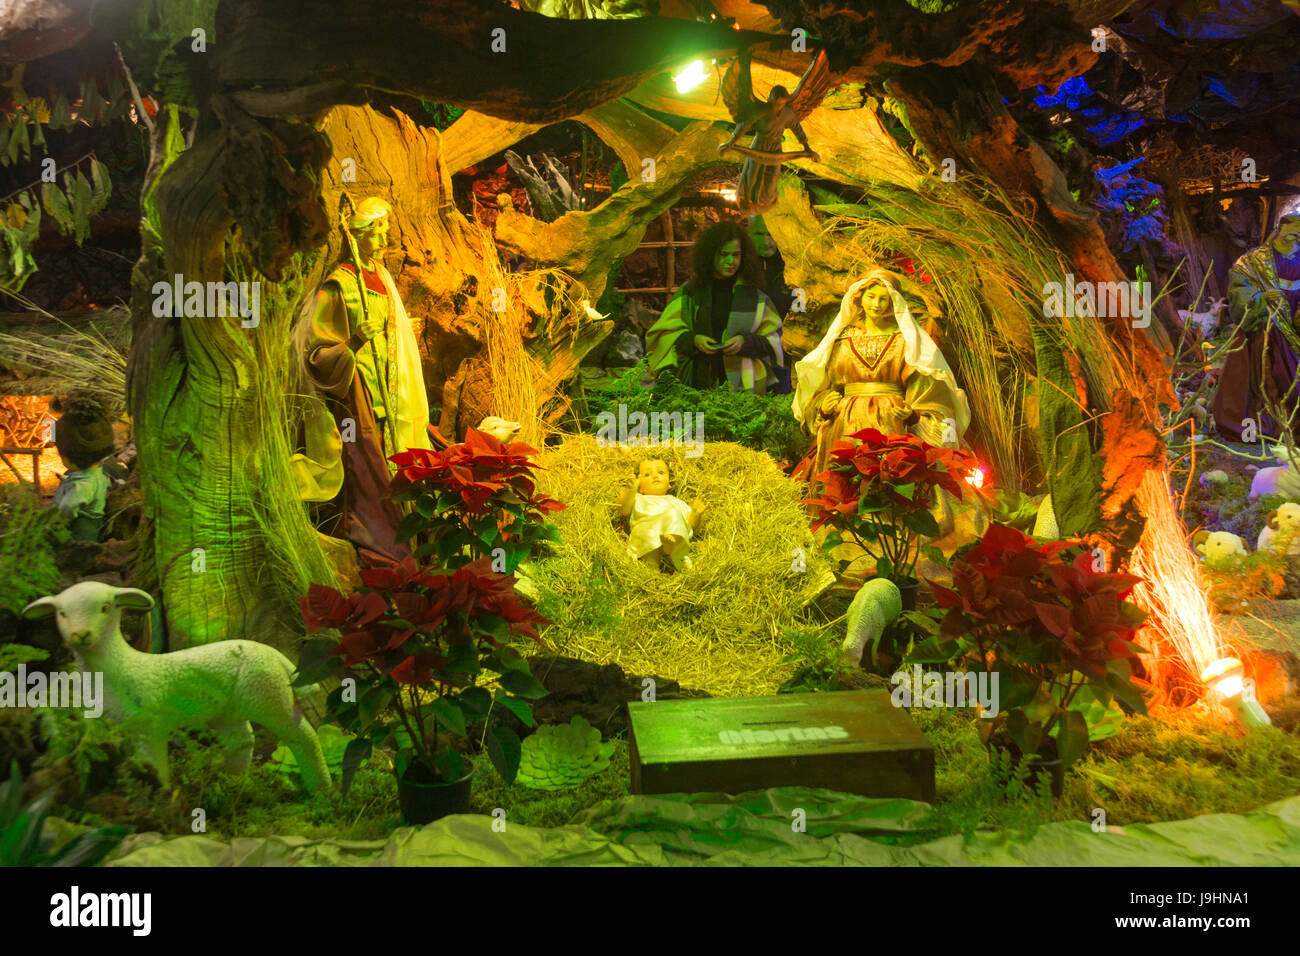 A nativity scene, part of a much larger elaborate display at Curral das Freiras, Madeira - Stock Image